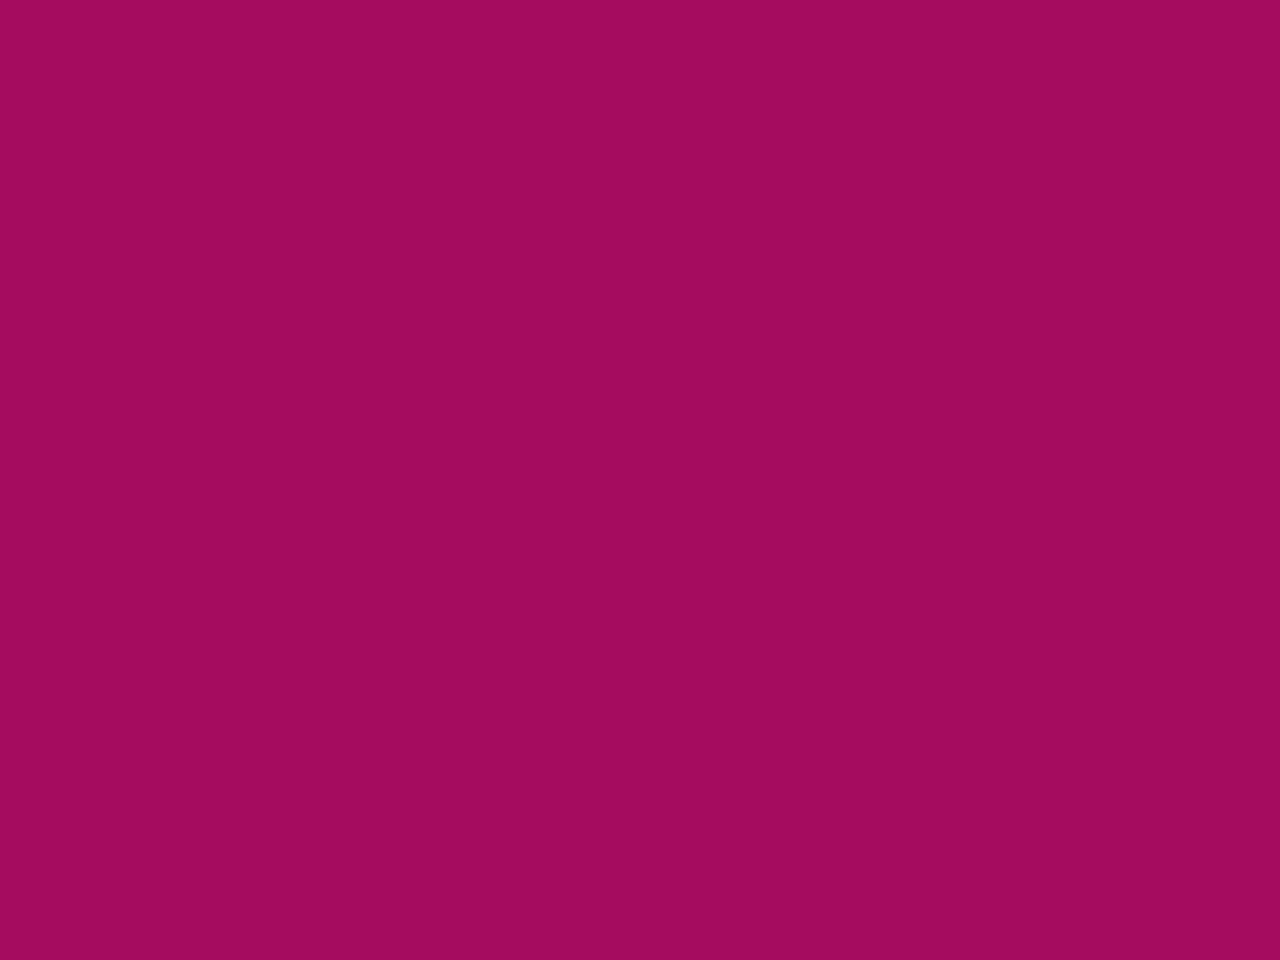 1280x960 Jazzberry Jam Solid Color Background